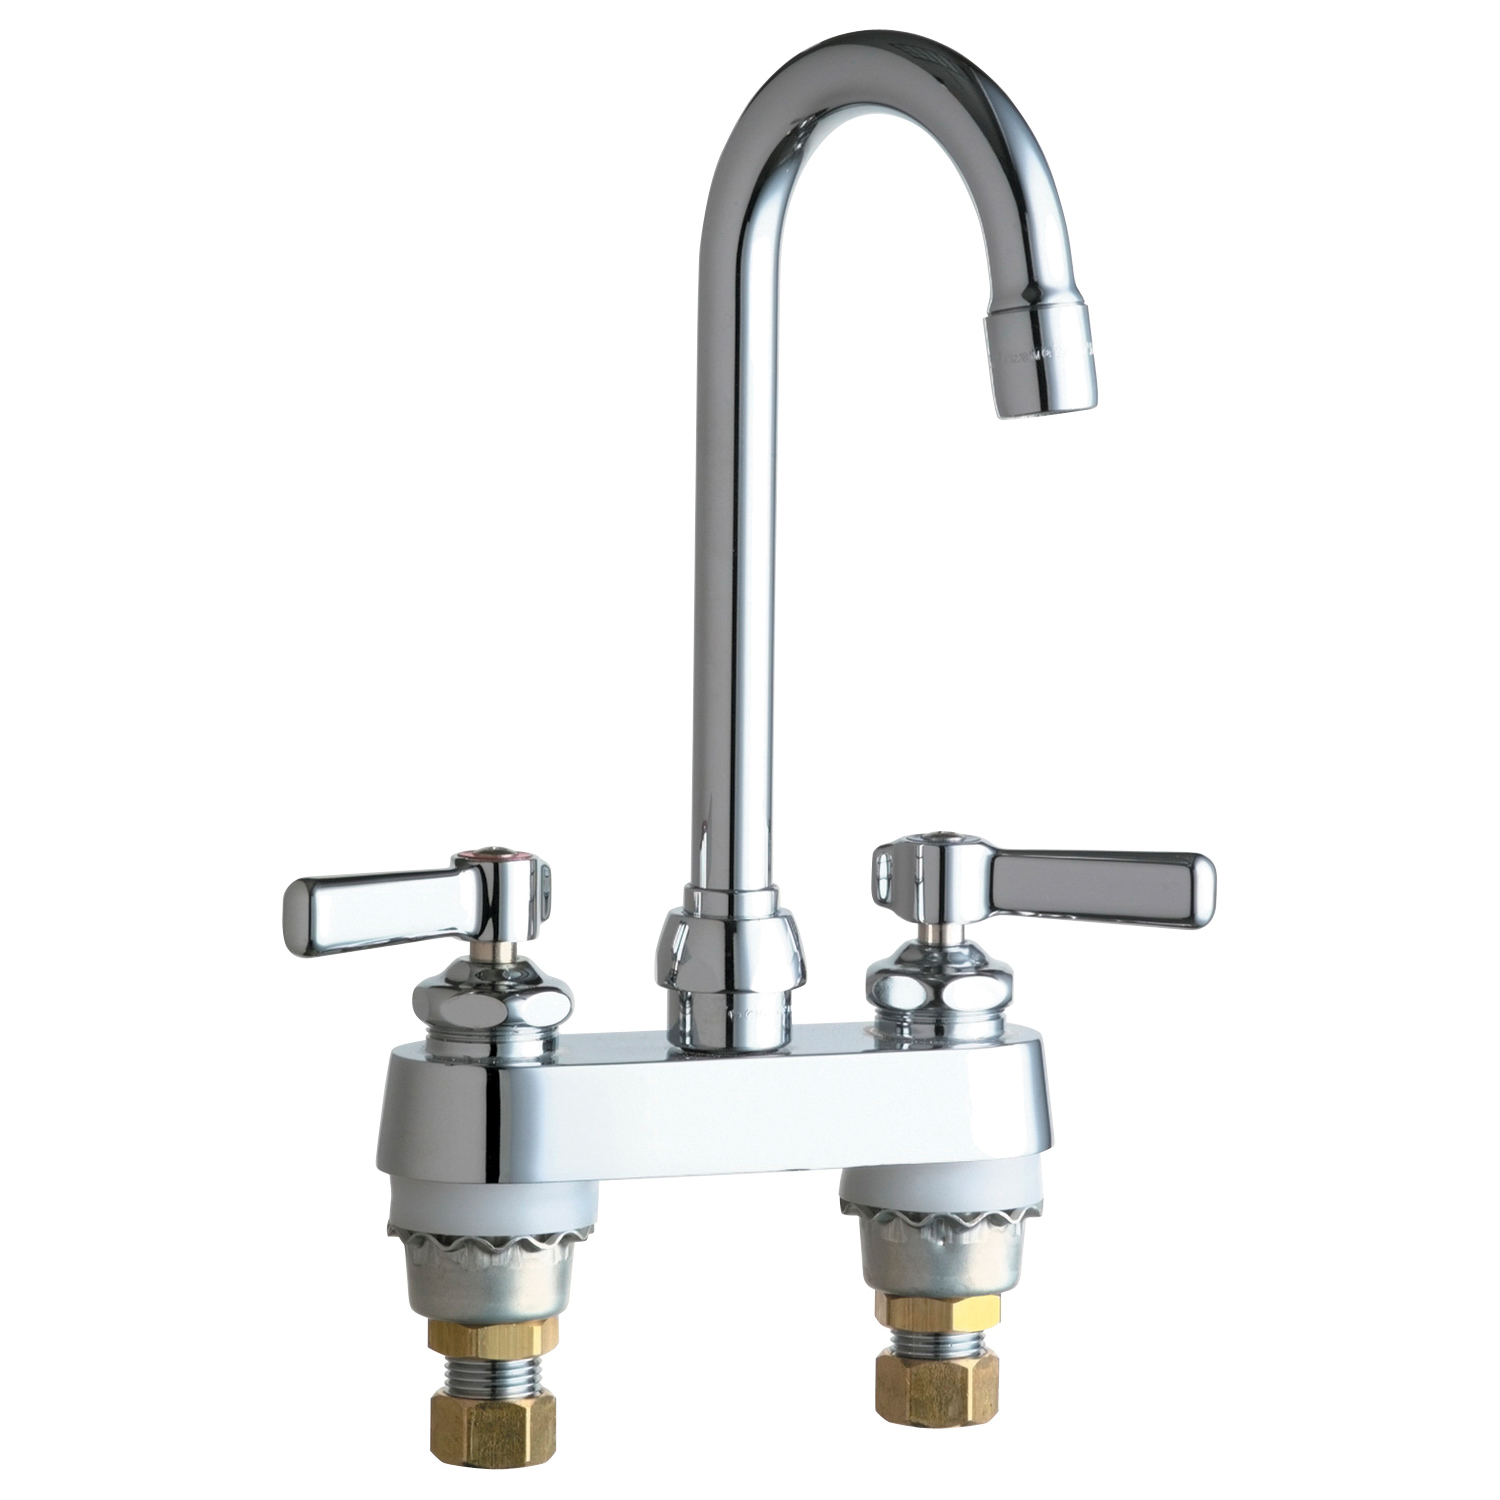 Chicago Faucet® 895-E35ABCP Lavatory Sink Faucet, Polished Chrome, 2 Handles, 1.5 gpm Flow Rate